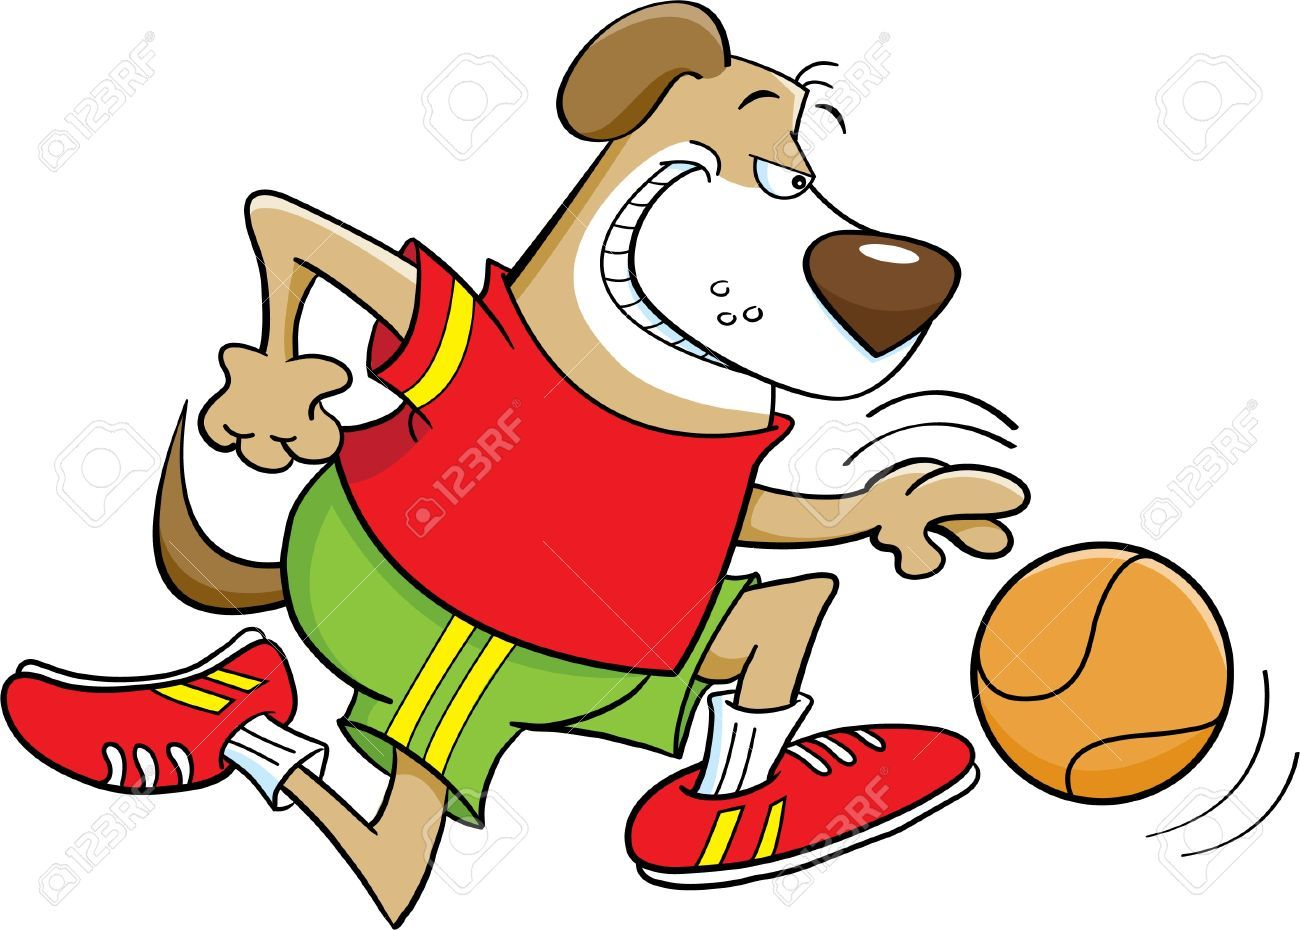 Funny basketball clipart 5 » Clipart Portal.